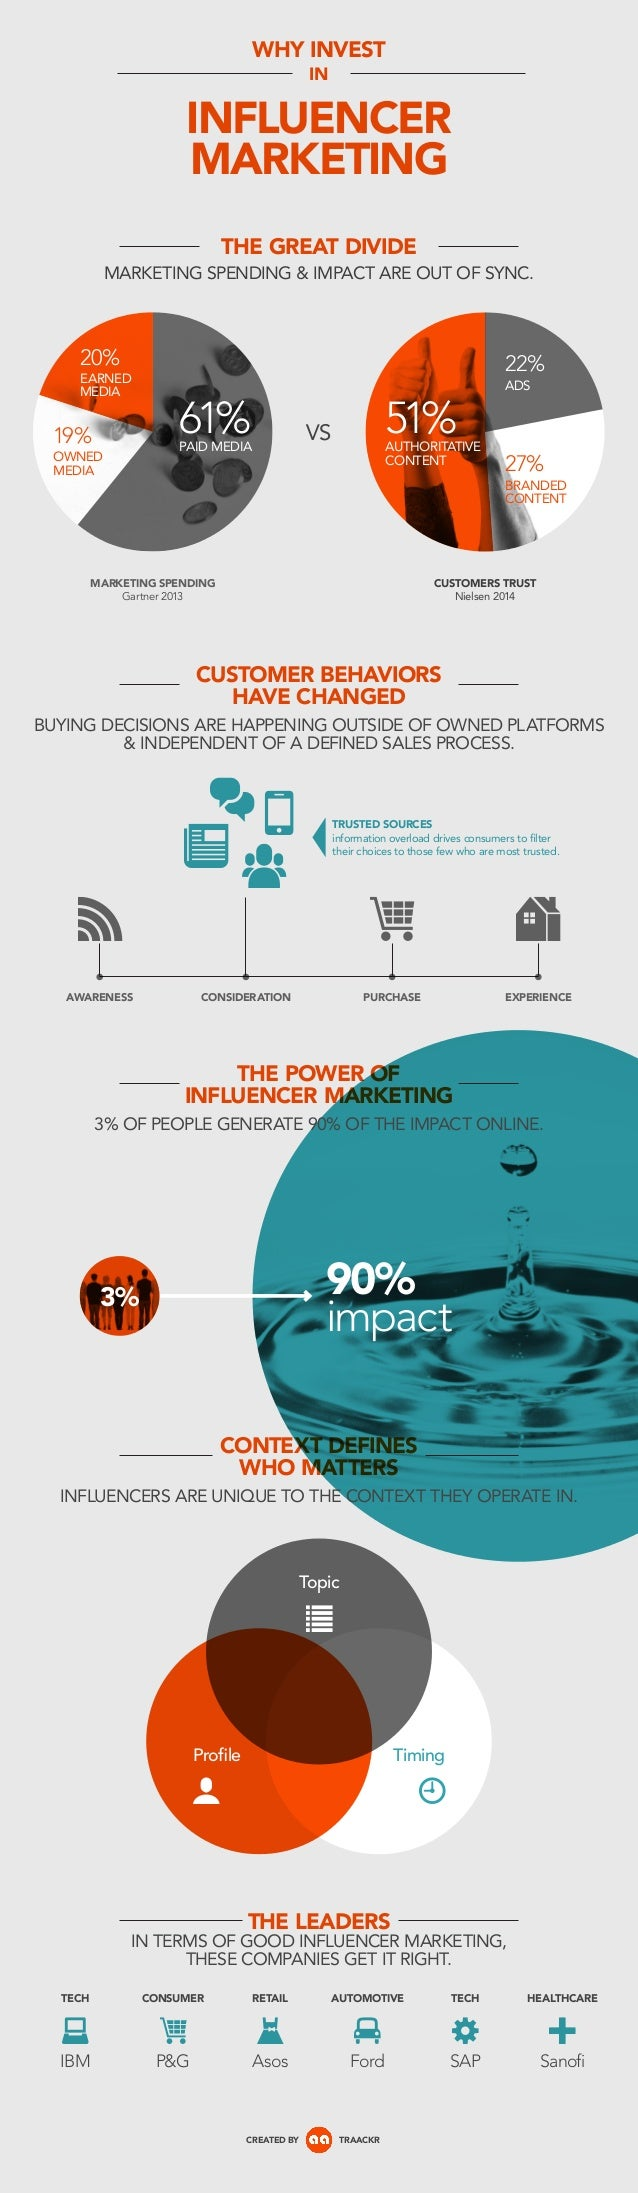 INFLUENCER MARKETING WHY INVEST IN THE GREAT DIVIDE MARKETING SPENDING & IMPACT ARE OUT OF SYNC. 61%PAID MEDIA 20% EARNED ...